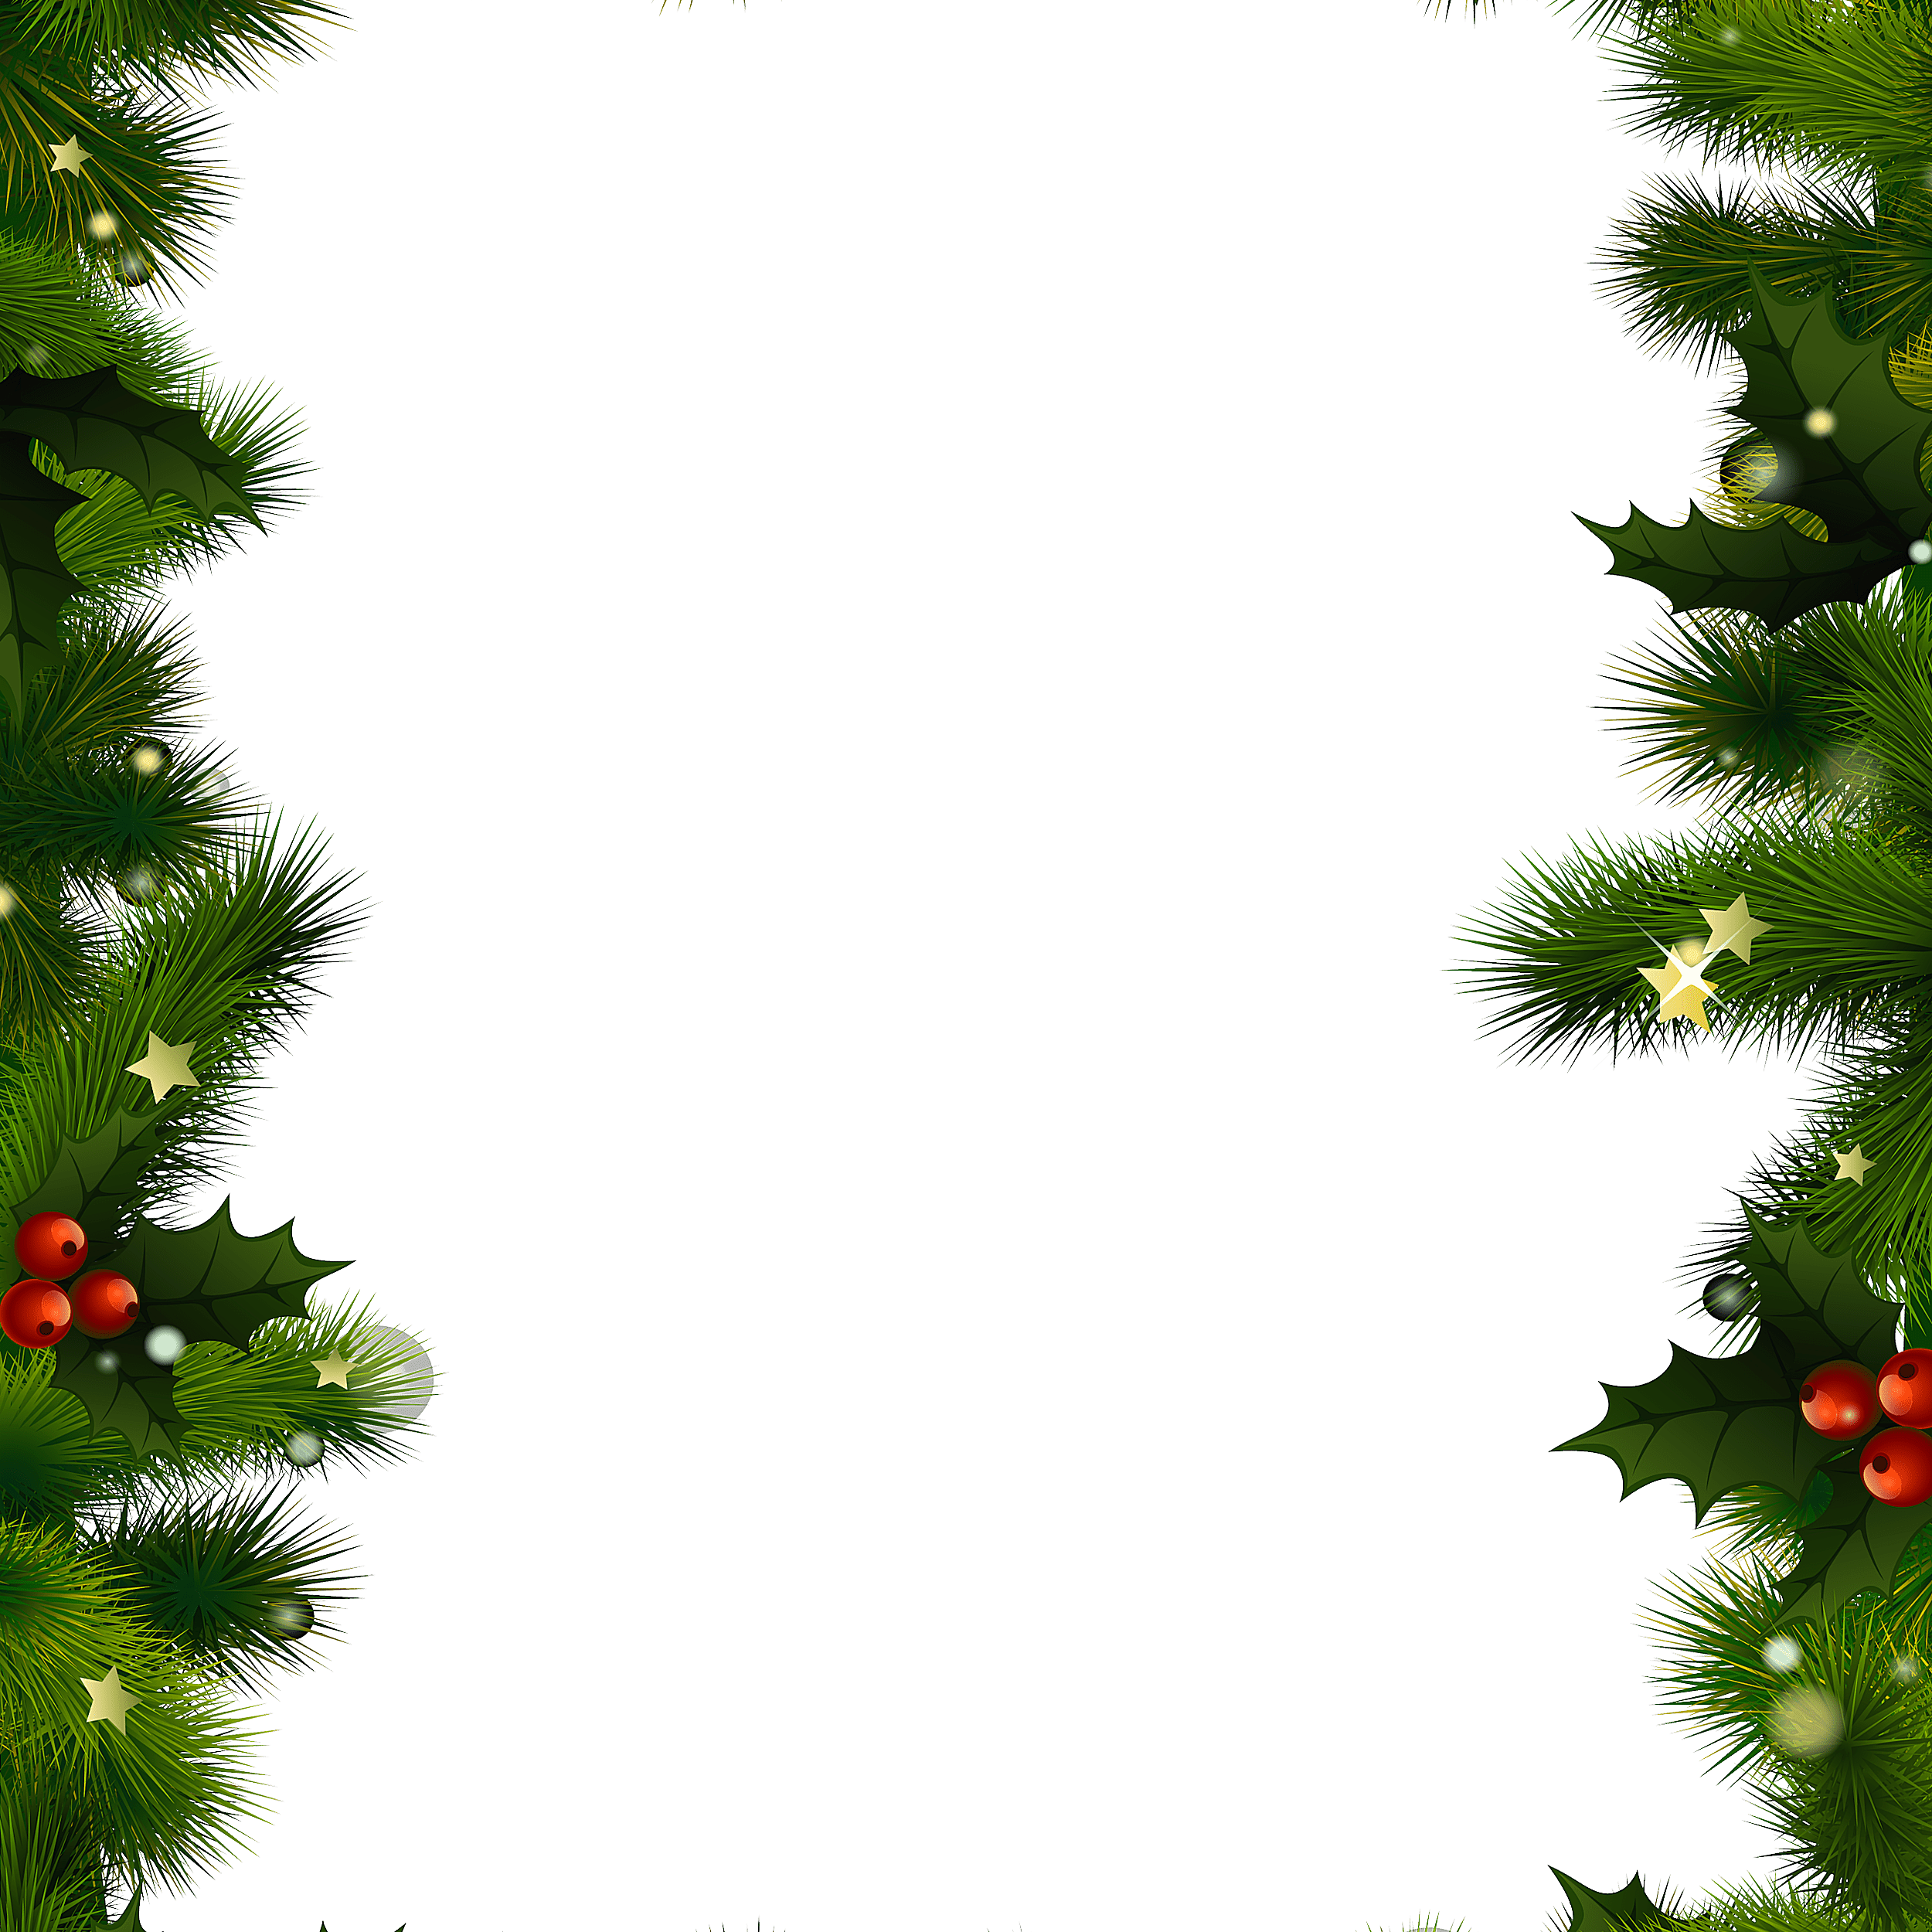 Christmas Borders Clipart.The Best Free Christmas Borders And Frames